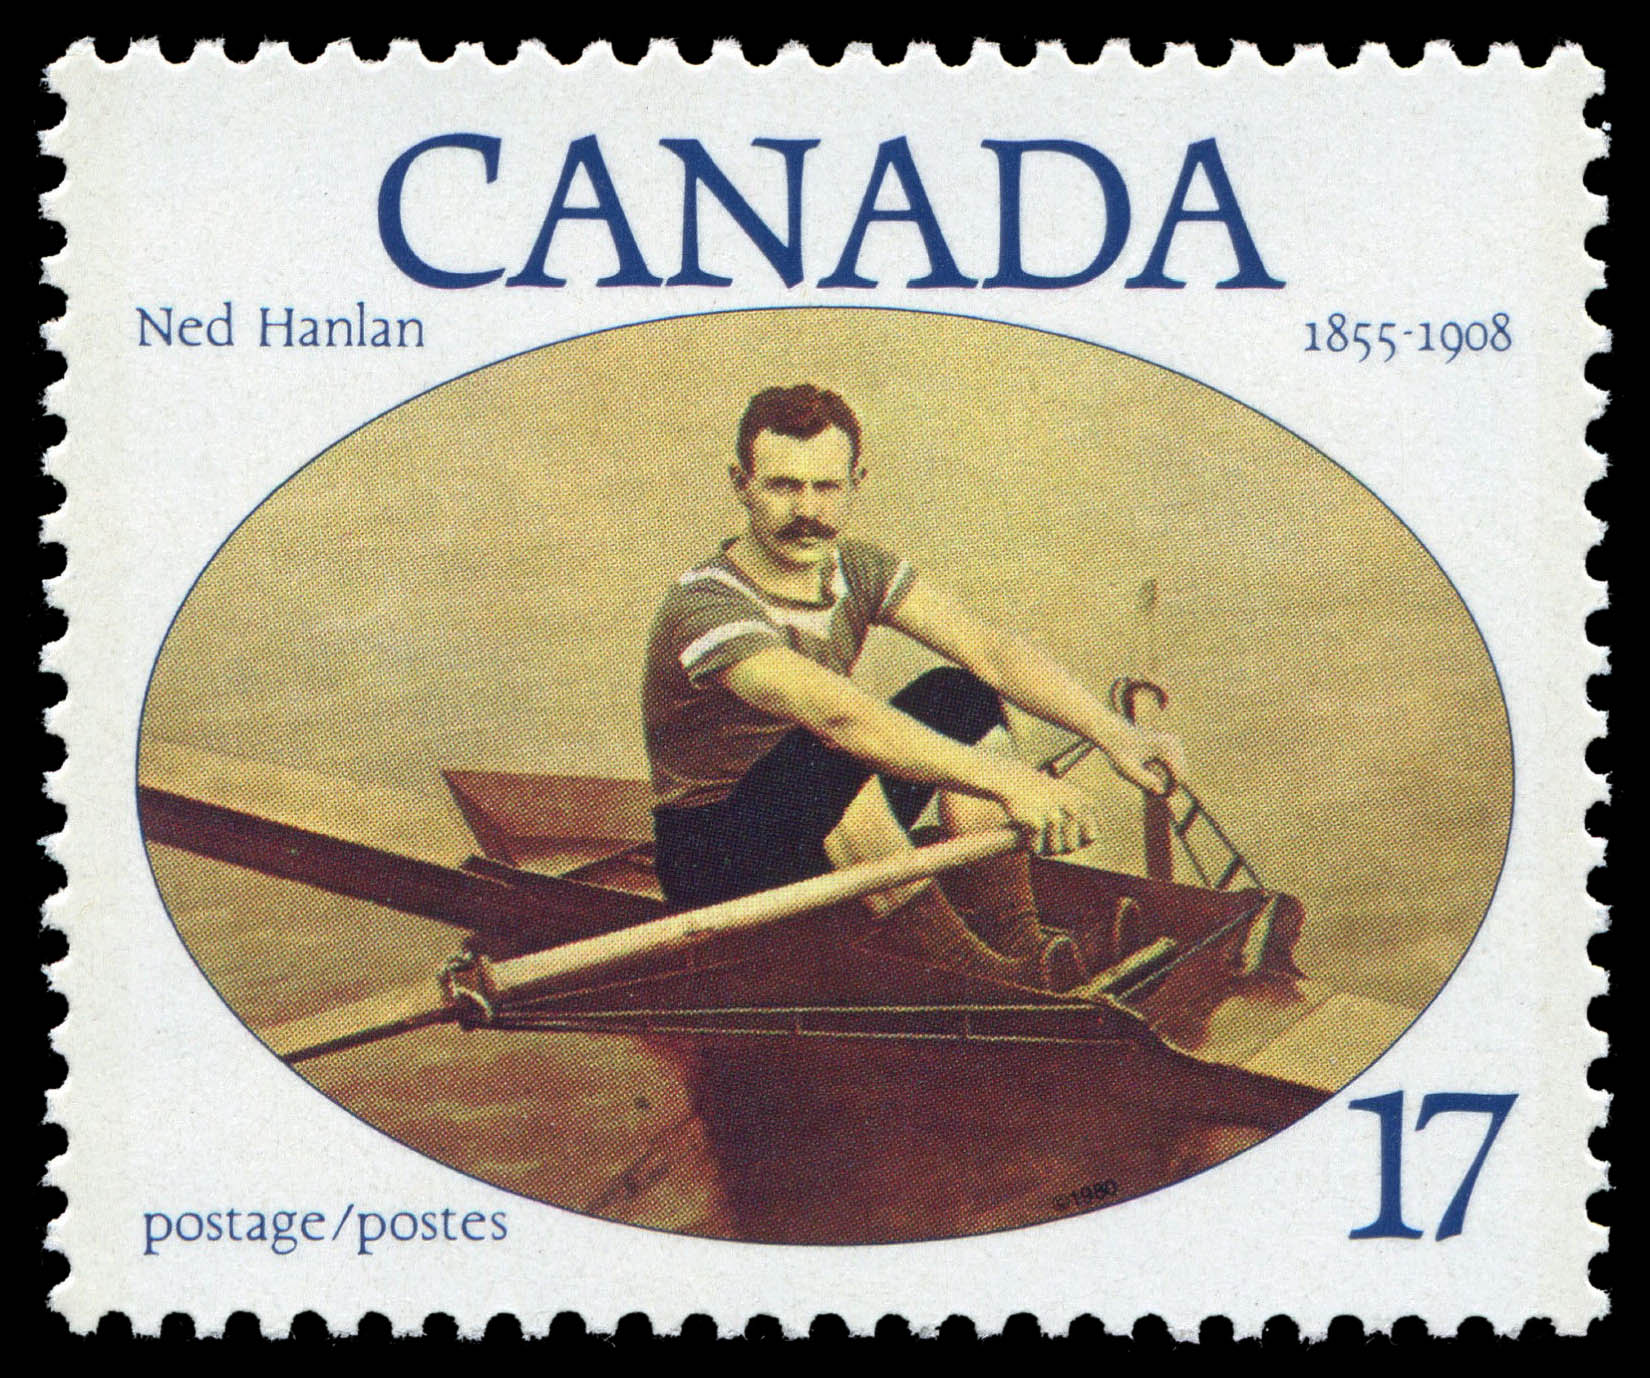 Ned Hanlan, 1855-1908 Canada Postage Stamp